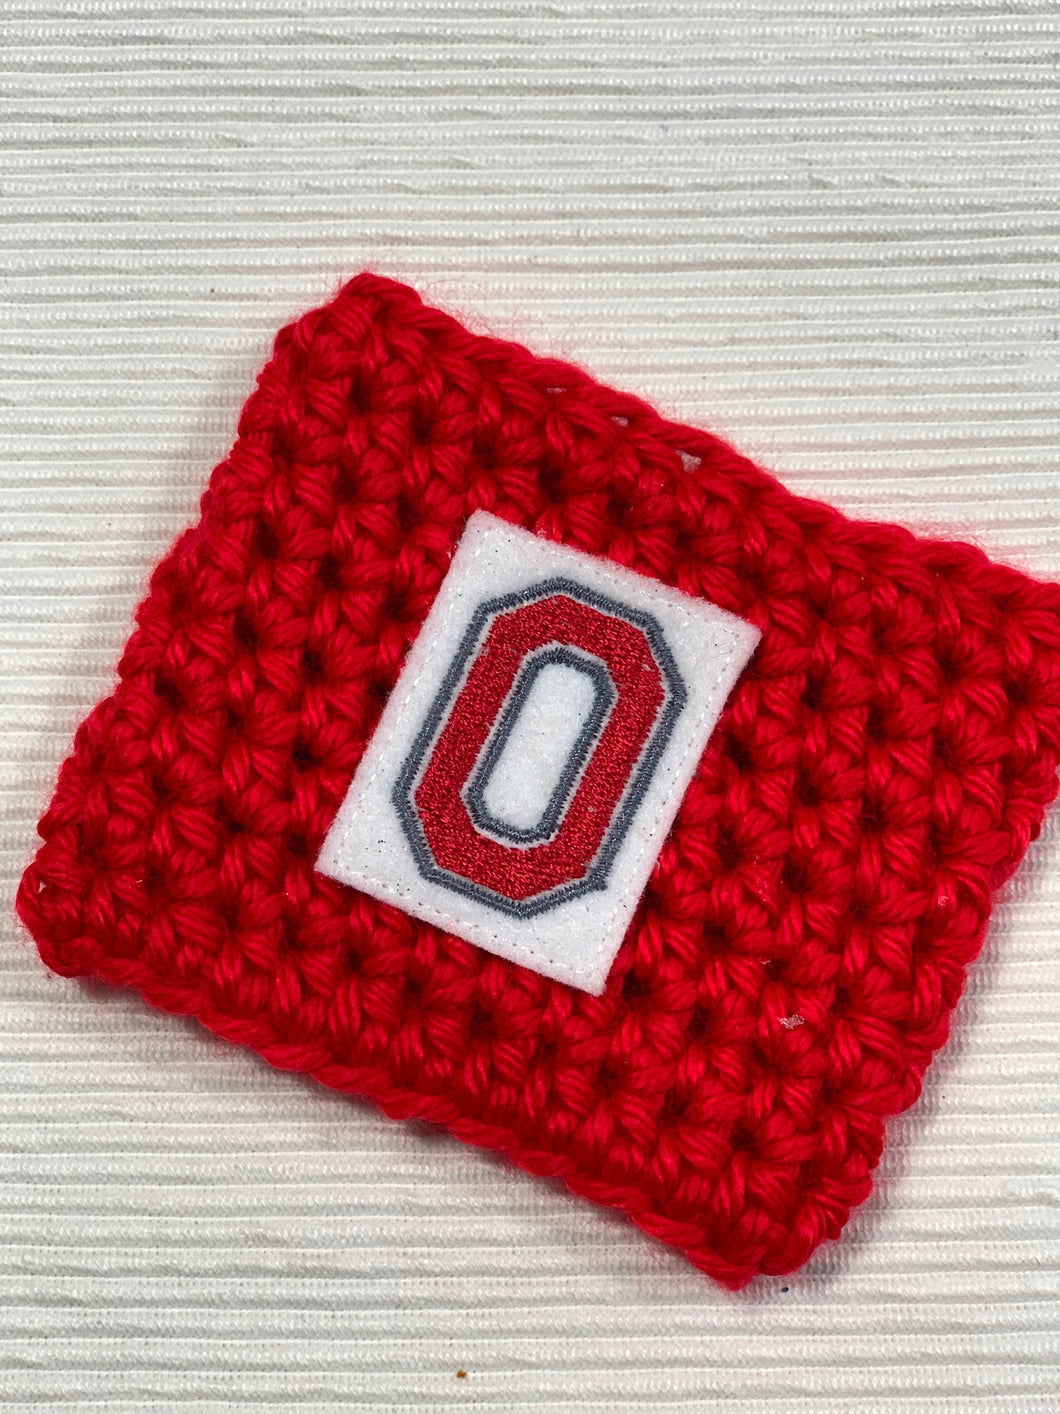 Ohio State O Reusable Eco-Friendly Hot and Cold Beverage Cup Cozy